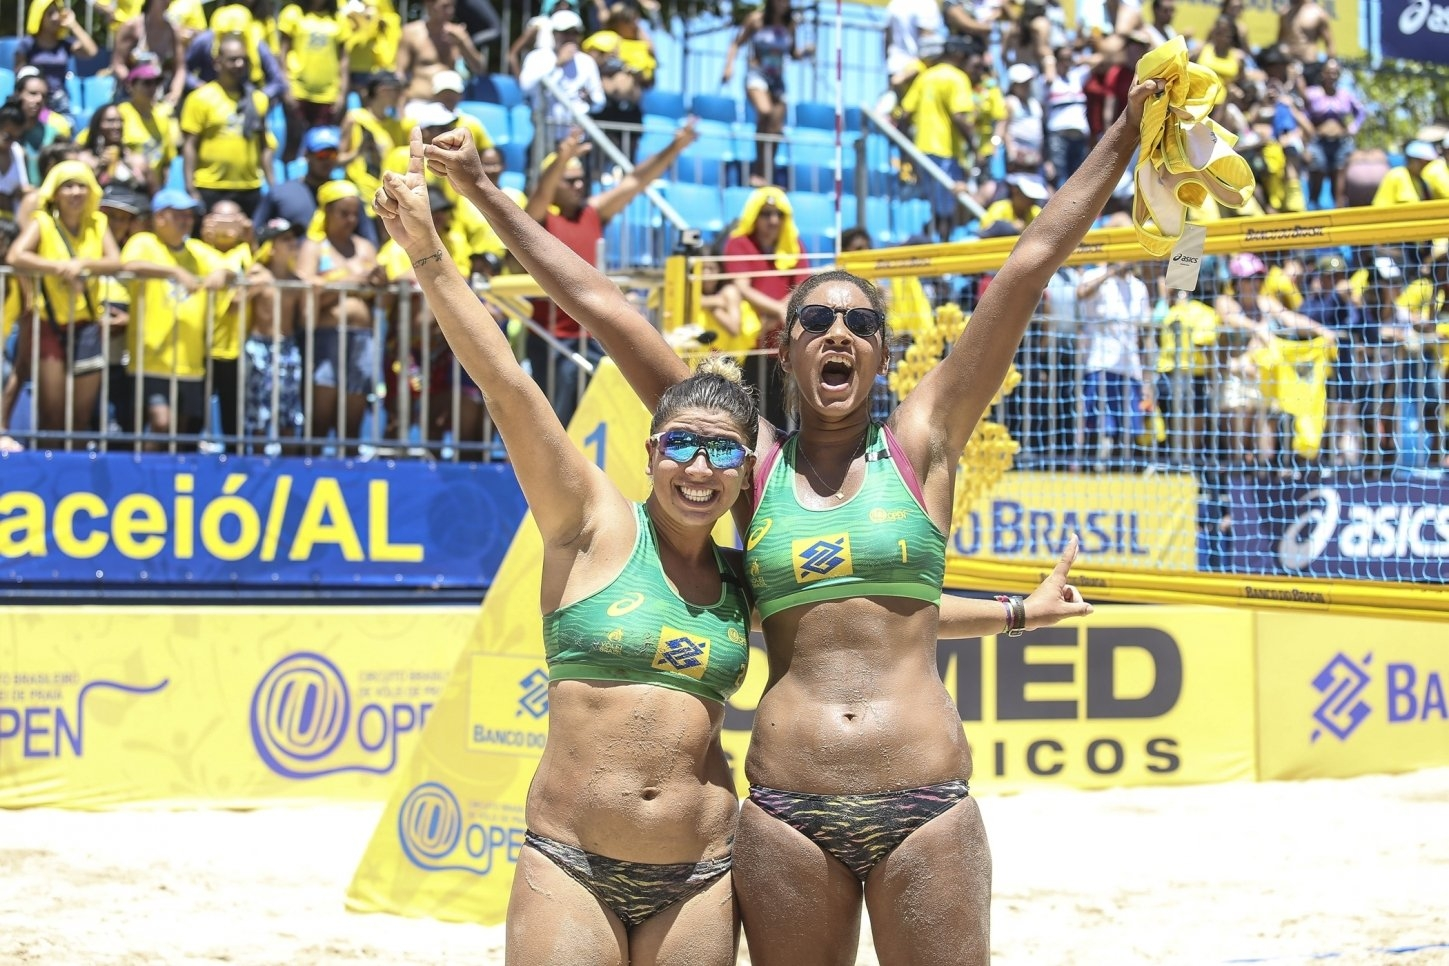 Rebecca and Ana Patrícia have topped the podium in the National Tour for the first time (Photocredit: CBV)